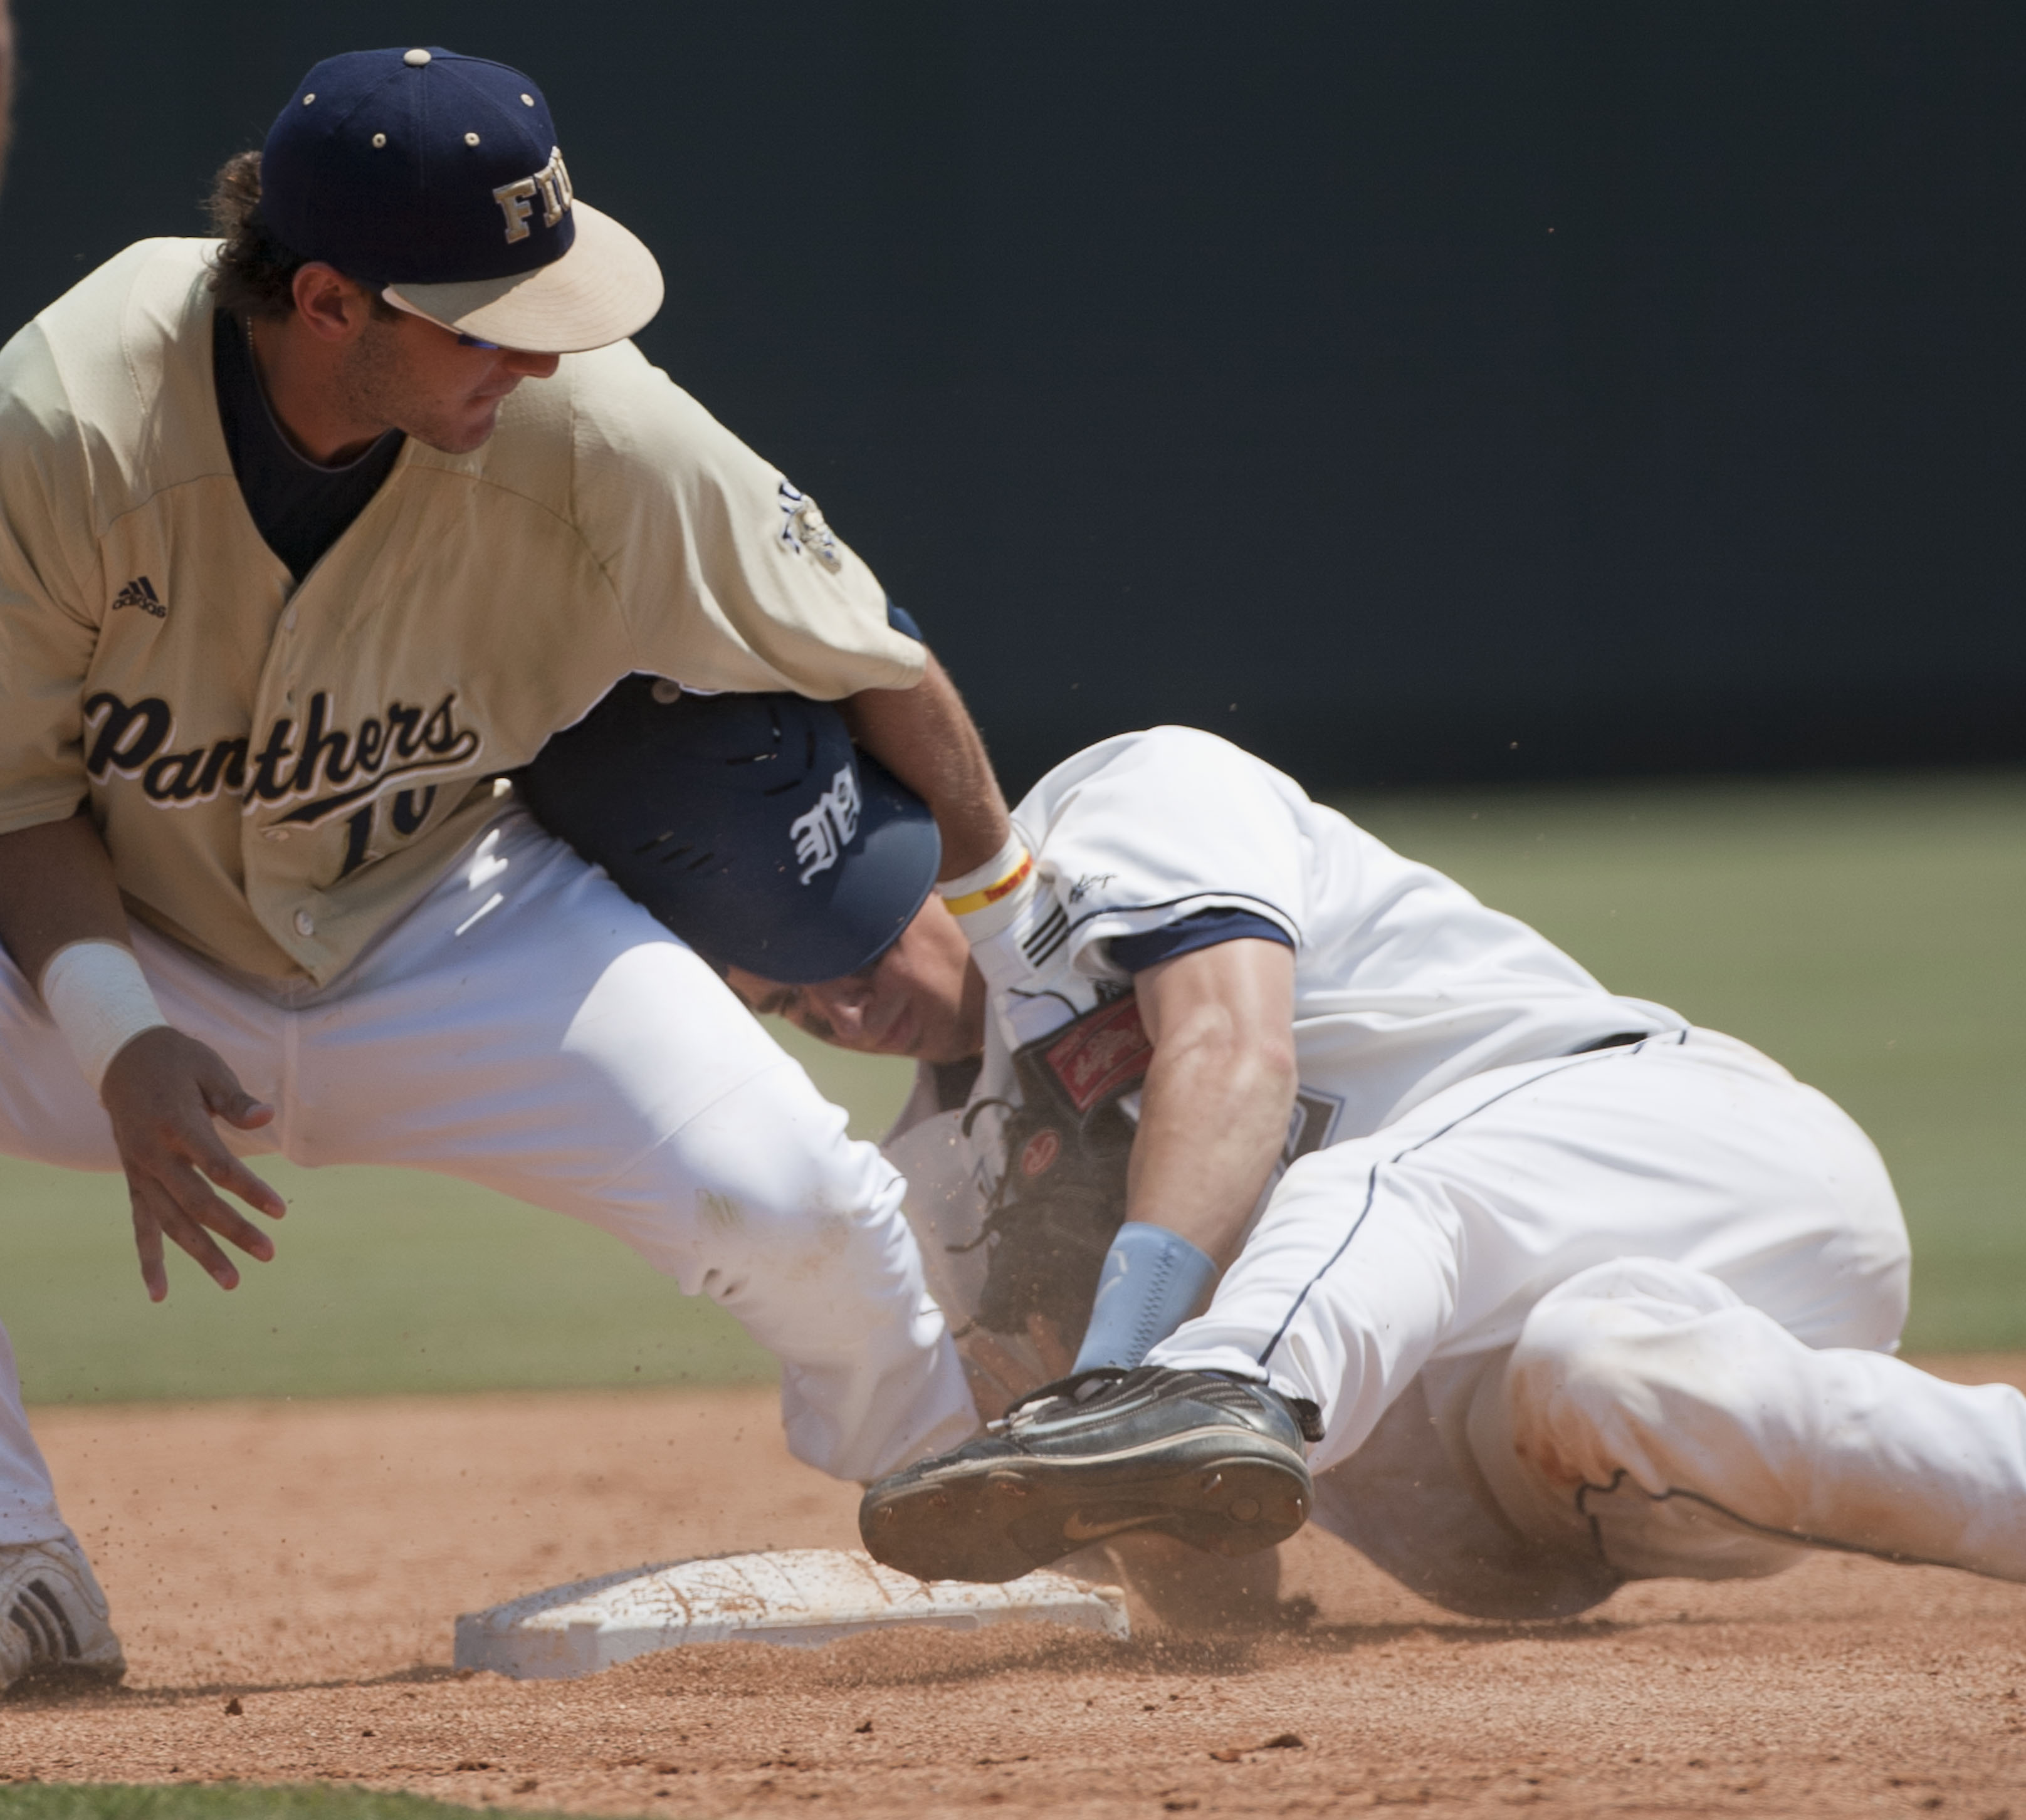 Maine's Michael Fransoso (2) steals second base, beating the tag by Florida International University's Garrett Wittels (10) in the fifth inning on Saturday June 4, 2011 at Boshamer Stadium in Chapel Hill, N.C.